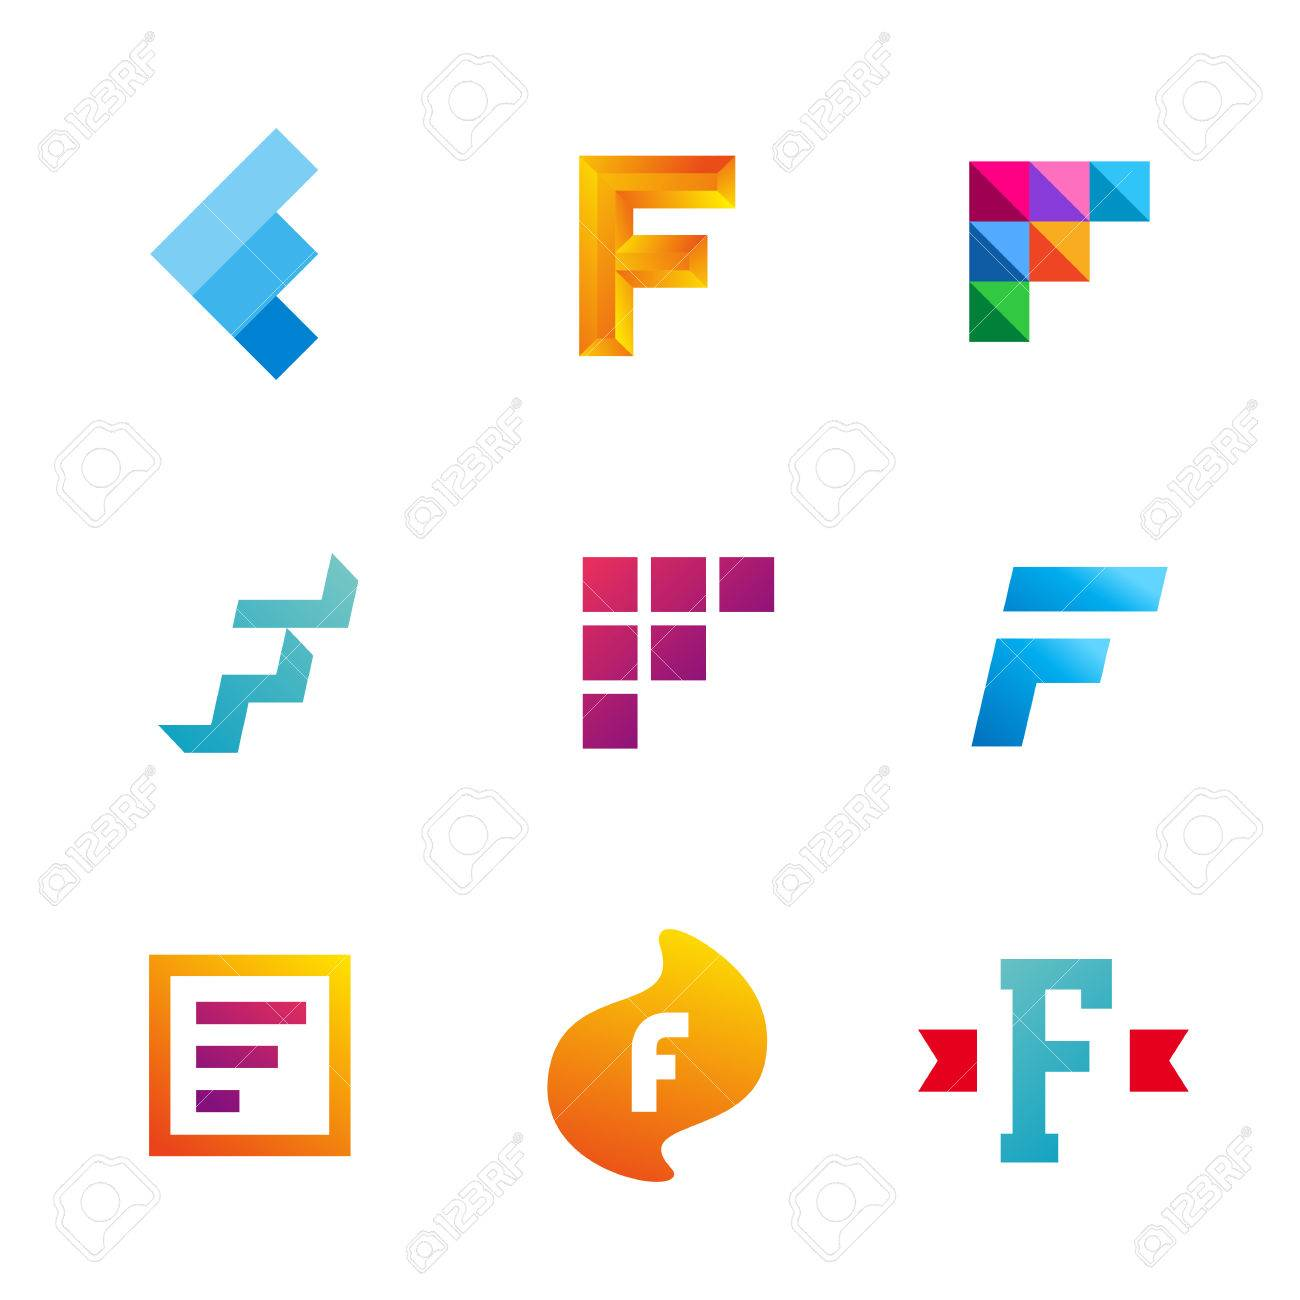 Set Of Letter F Logo Icons Design Template Elements Collection